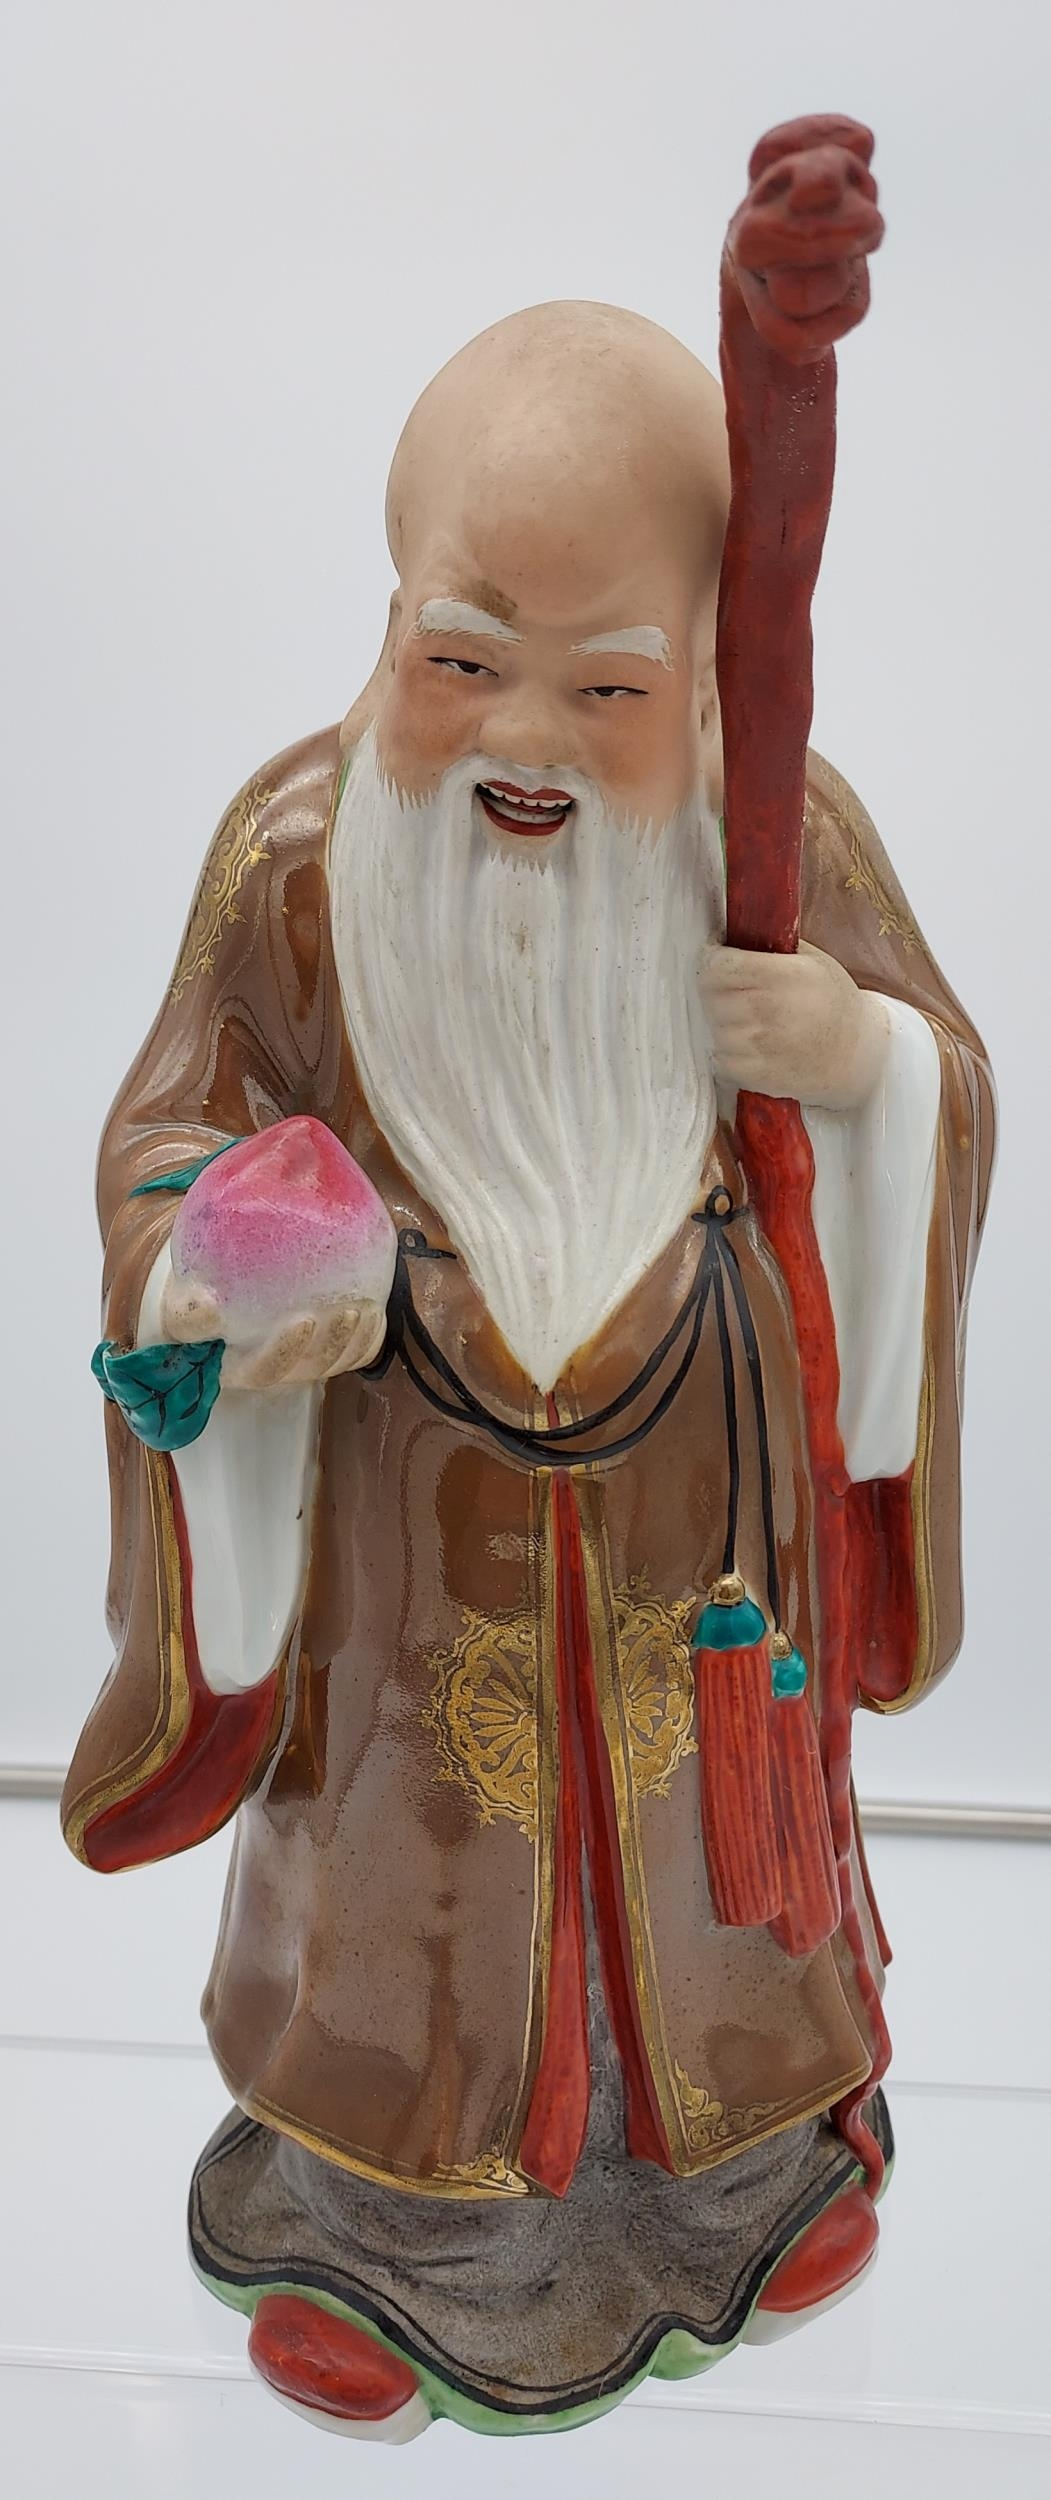 Antique Japanese hand painted god figurine with dragon head staff. Impressed mark to the base. [29cm